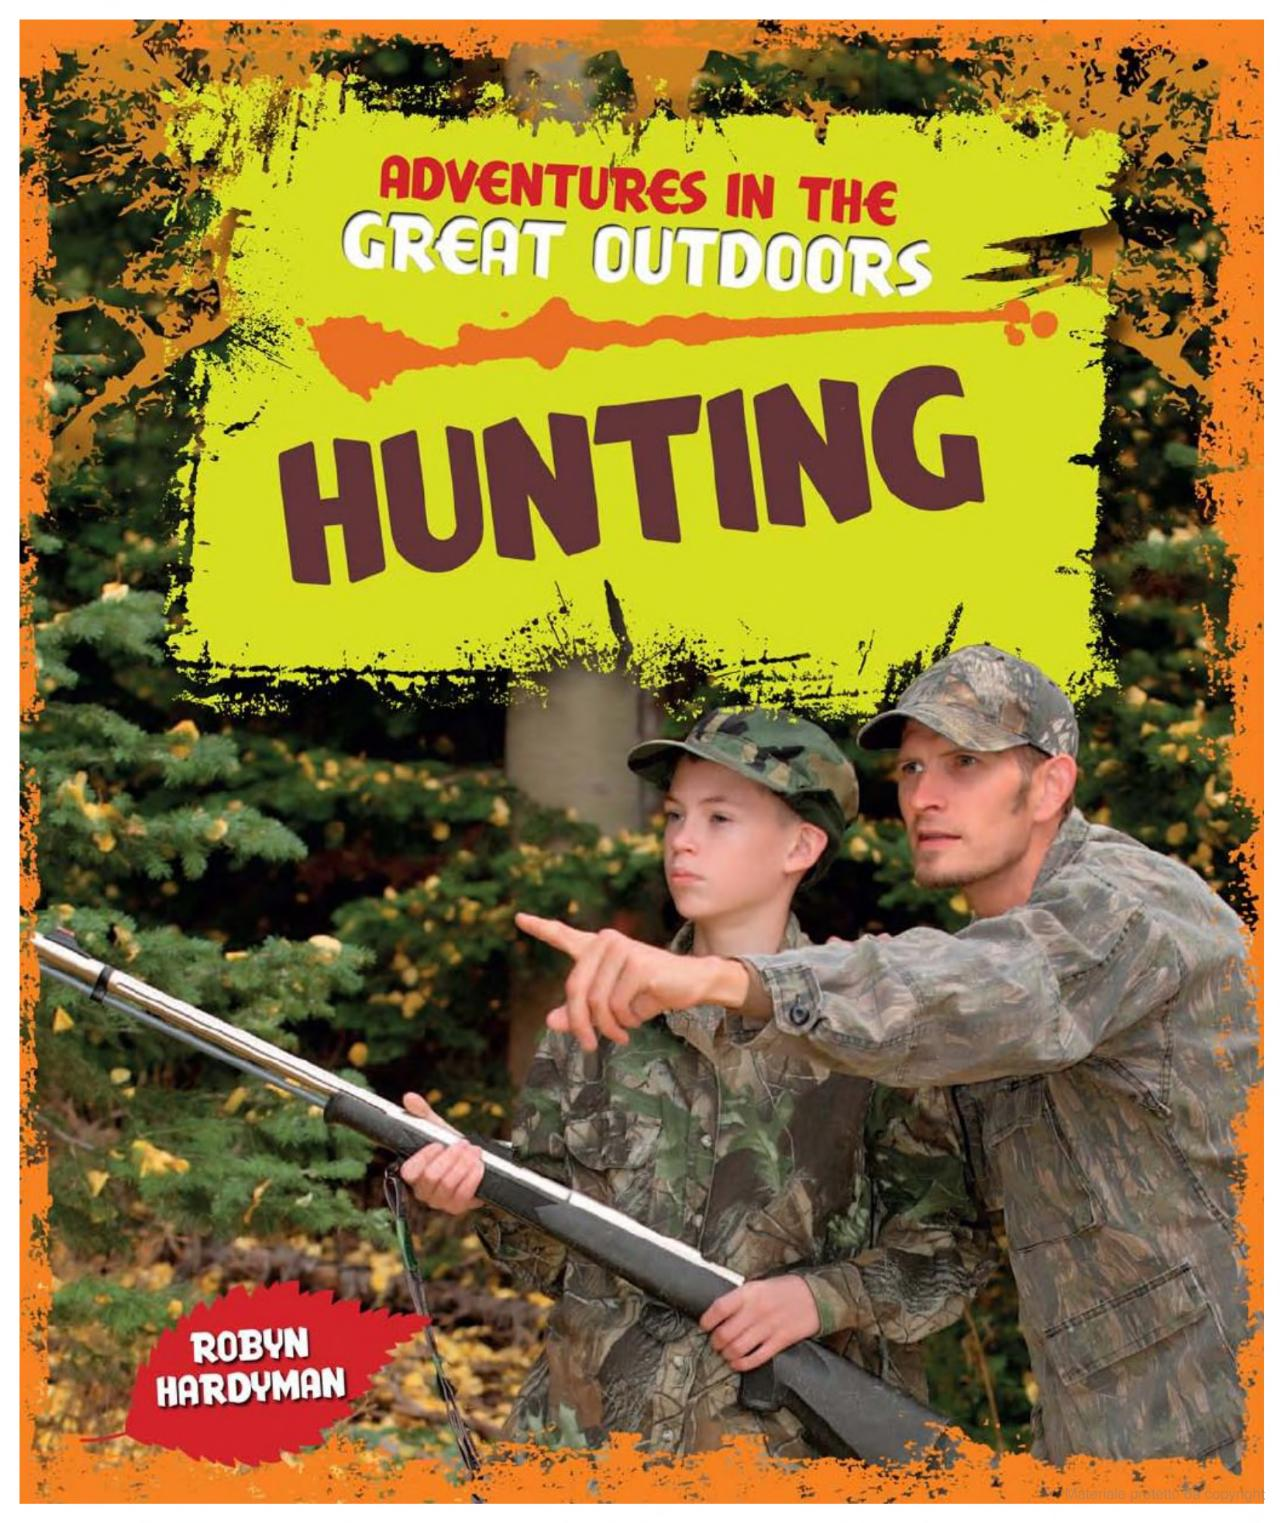 Adventures in the great outdoors – HUNTING, book © 2014 Windmill Books, written by Robyn Hardyman (U.S.)